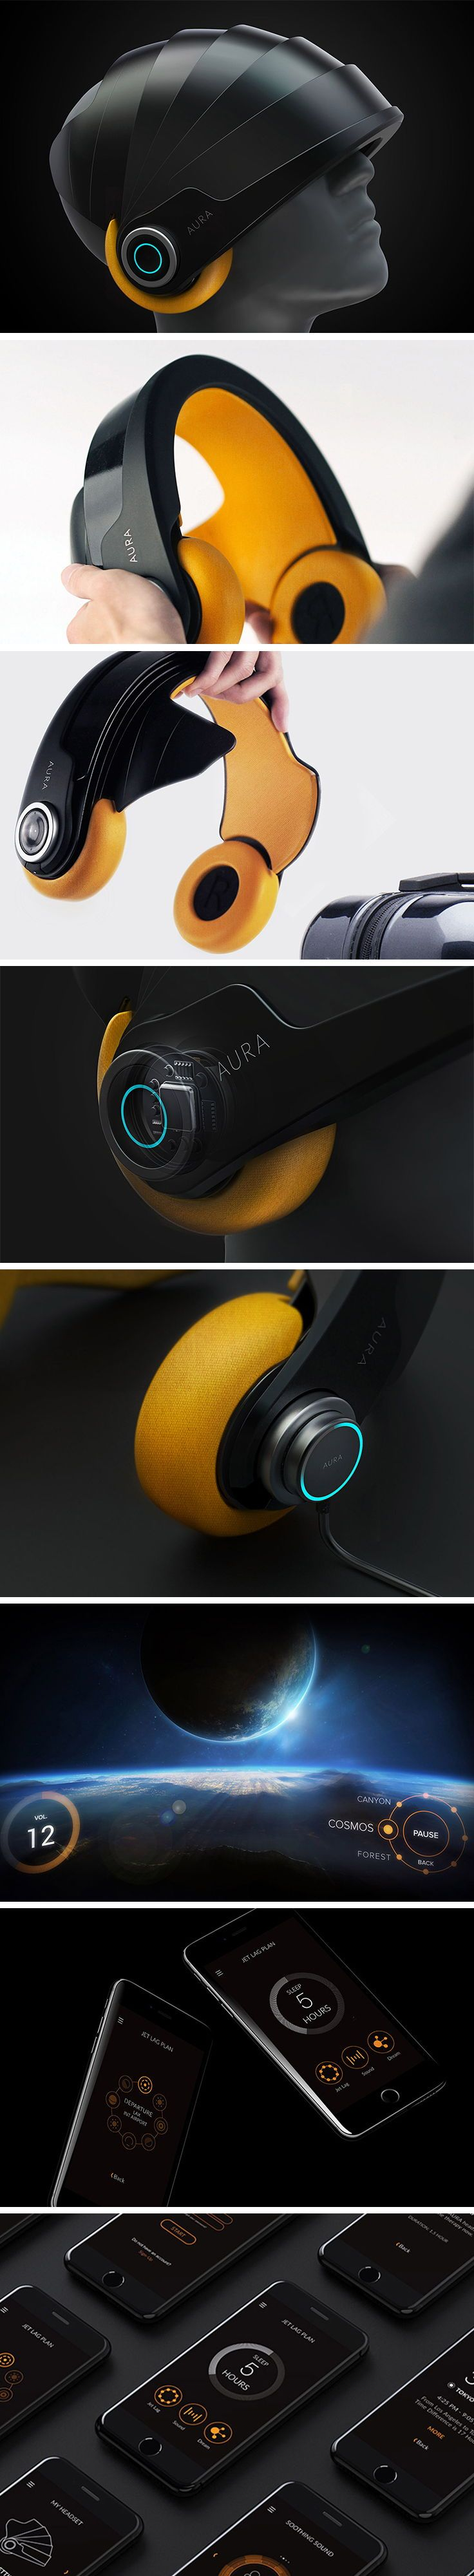 Designed primarily for business travelers and frequent flyers, Aura provides a personal place of serenity and relaxation using an immersive combination of virtual reality and light/sound therapy. During a flight, users can place headphones over the head and extend the retractable visor down for complete isolation.